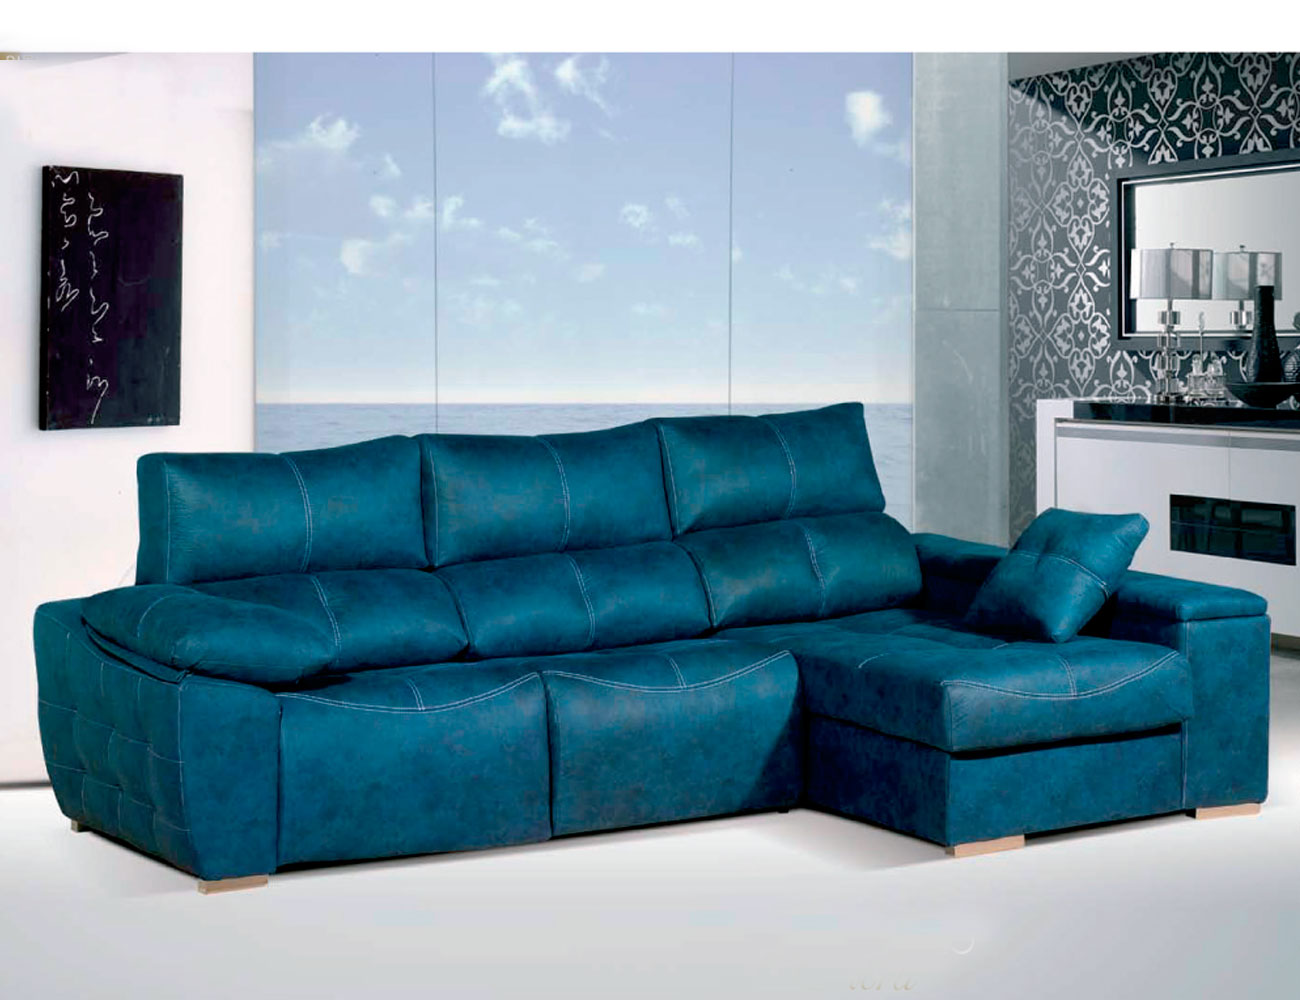 Sofa chaiselongue relax 2 motores anti manchas turquesa2